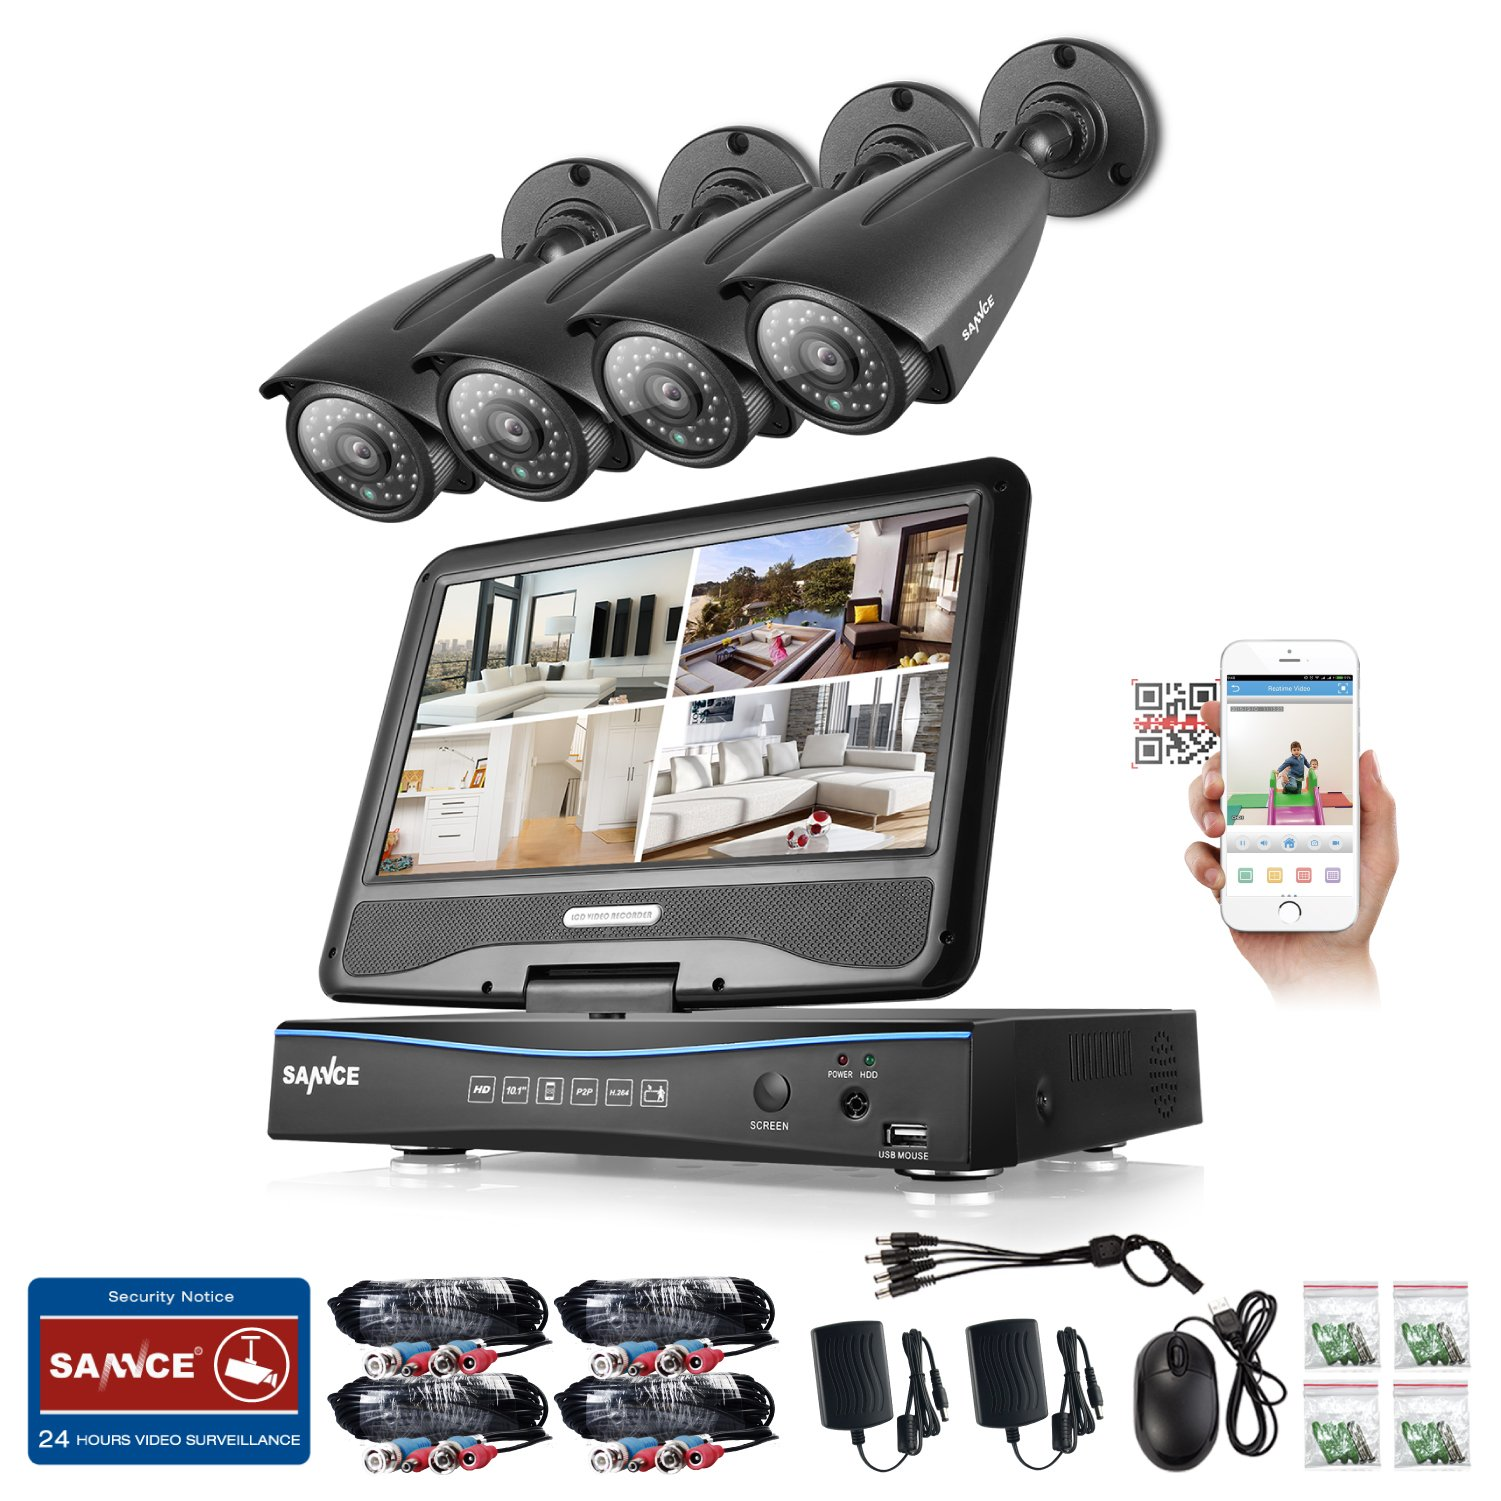 Sannce 8CH 1080N HD Security DVR Recorder Hybrid HVR NVR DVR All In One with Build in 10.1'' LCD Monitor and 1TB Hard Drive and (4) 960P Outdoor Fixed CCTV Camera, Smart IR-CUT, 100ft Night Vision